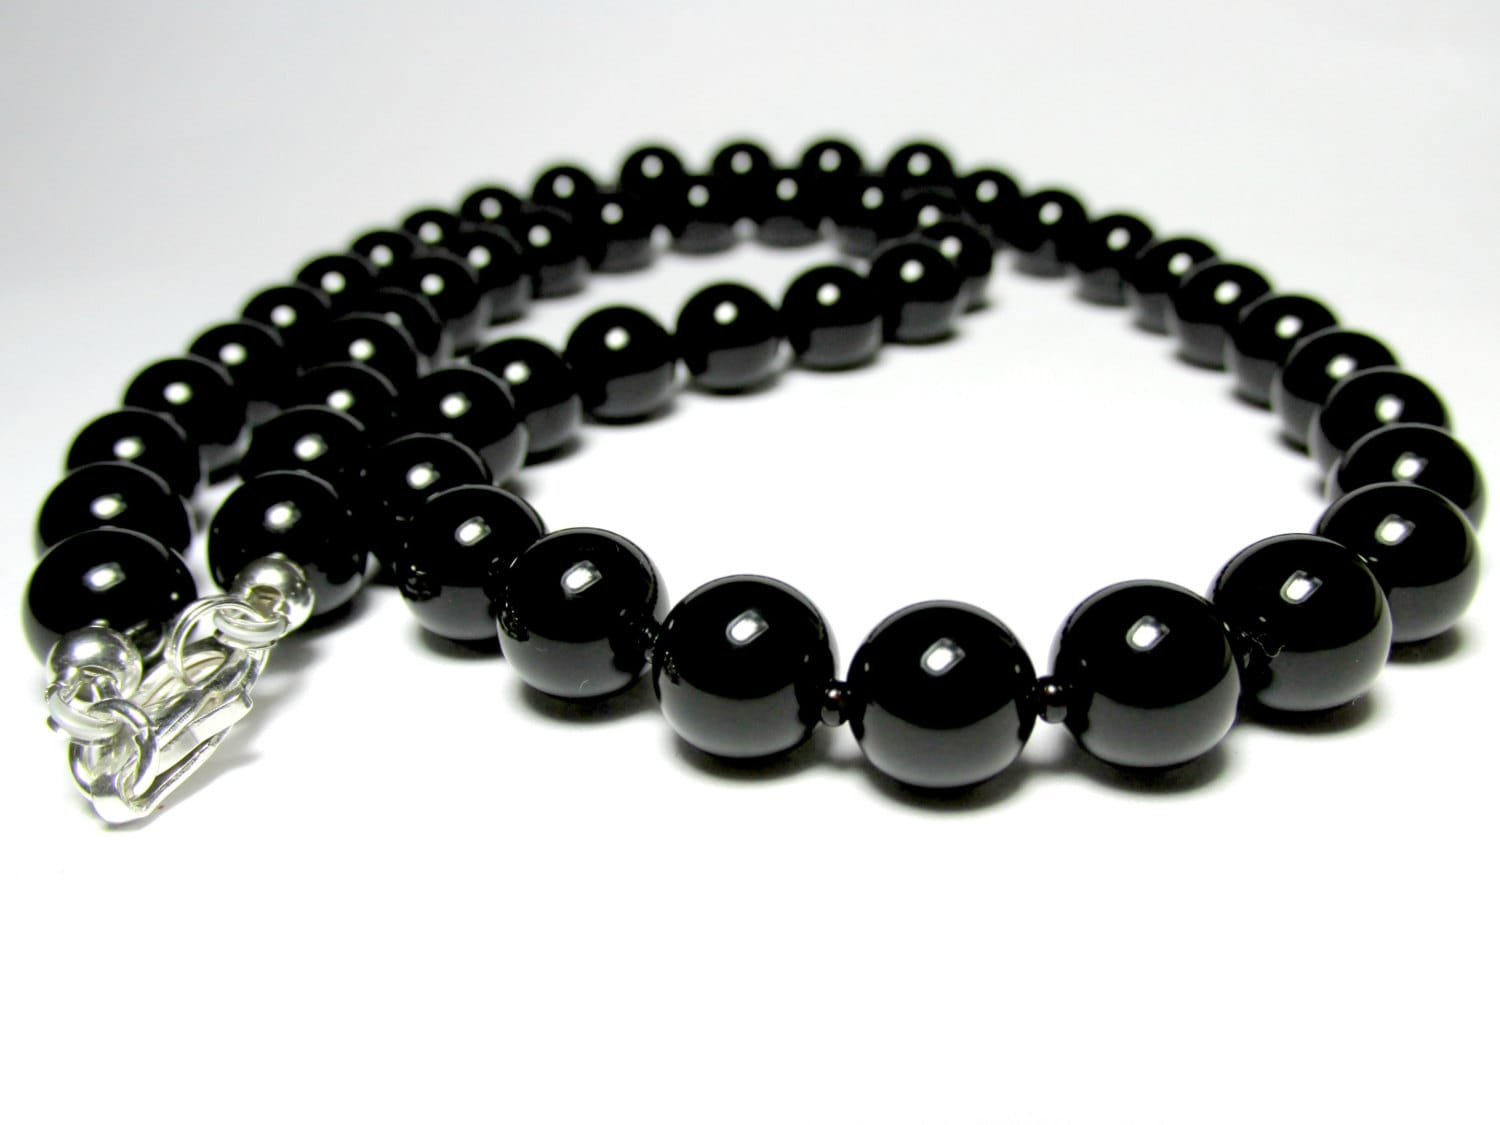 bead necklace lazaro for soho onyx jewelry faceted chains men spinel black